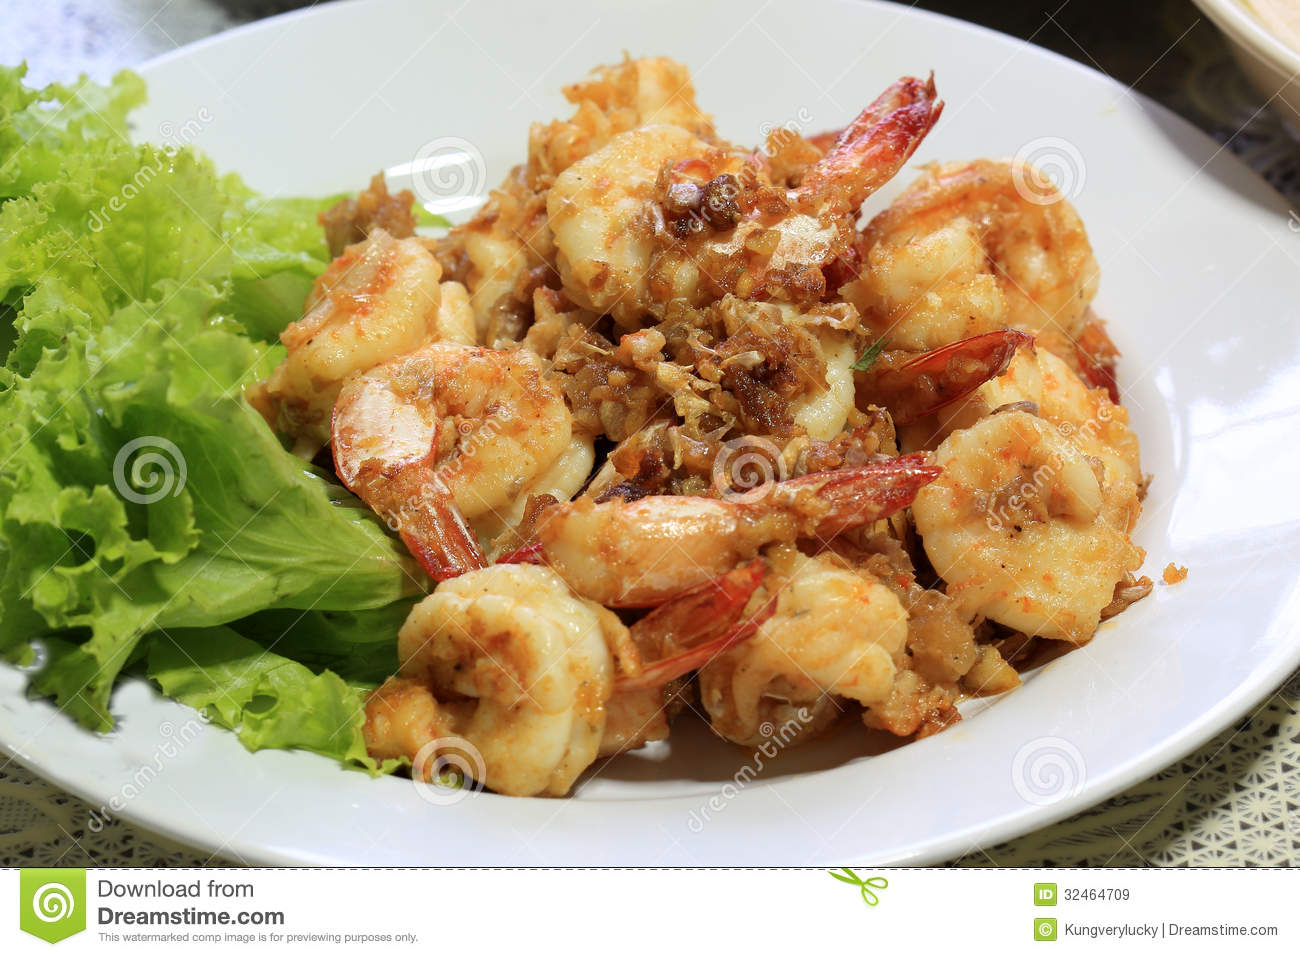 Shrimp With Pepper And Garlic In Thai Style Dish Royalty Free Stock ...